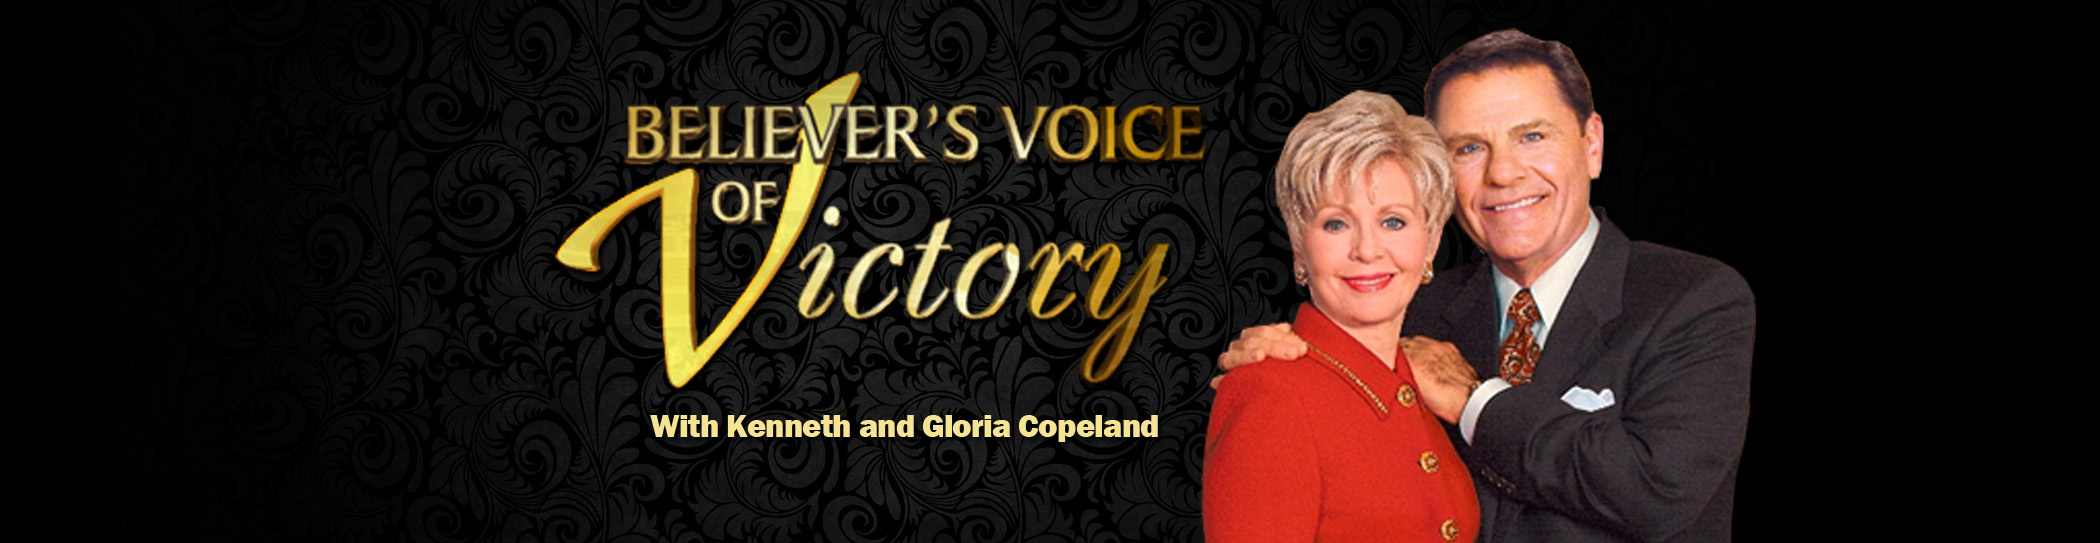 Believer's Voice of Victory